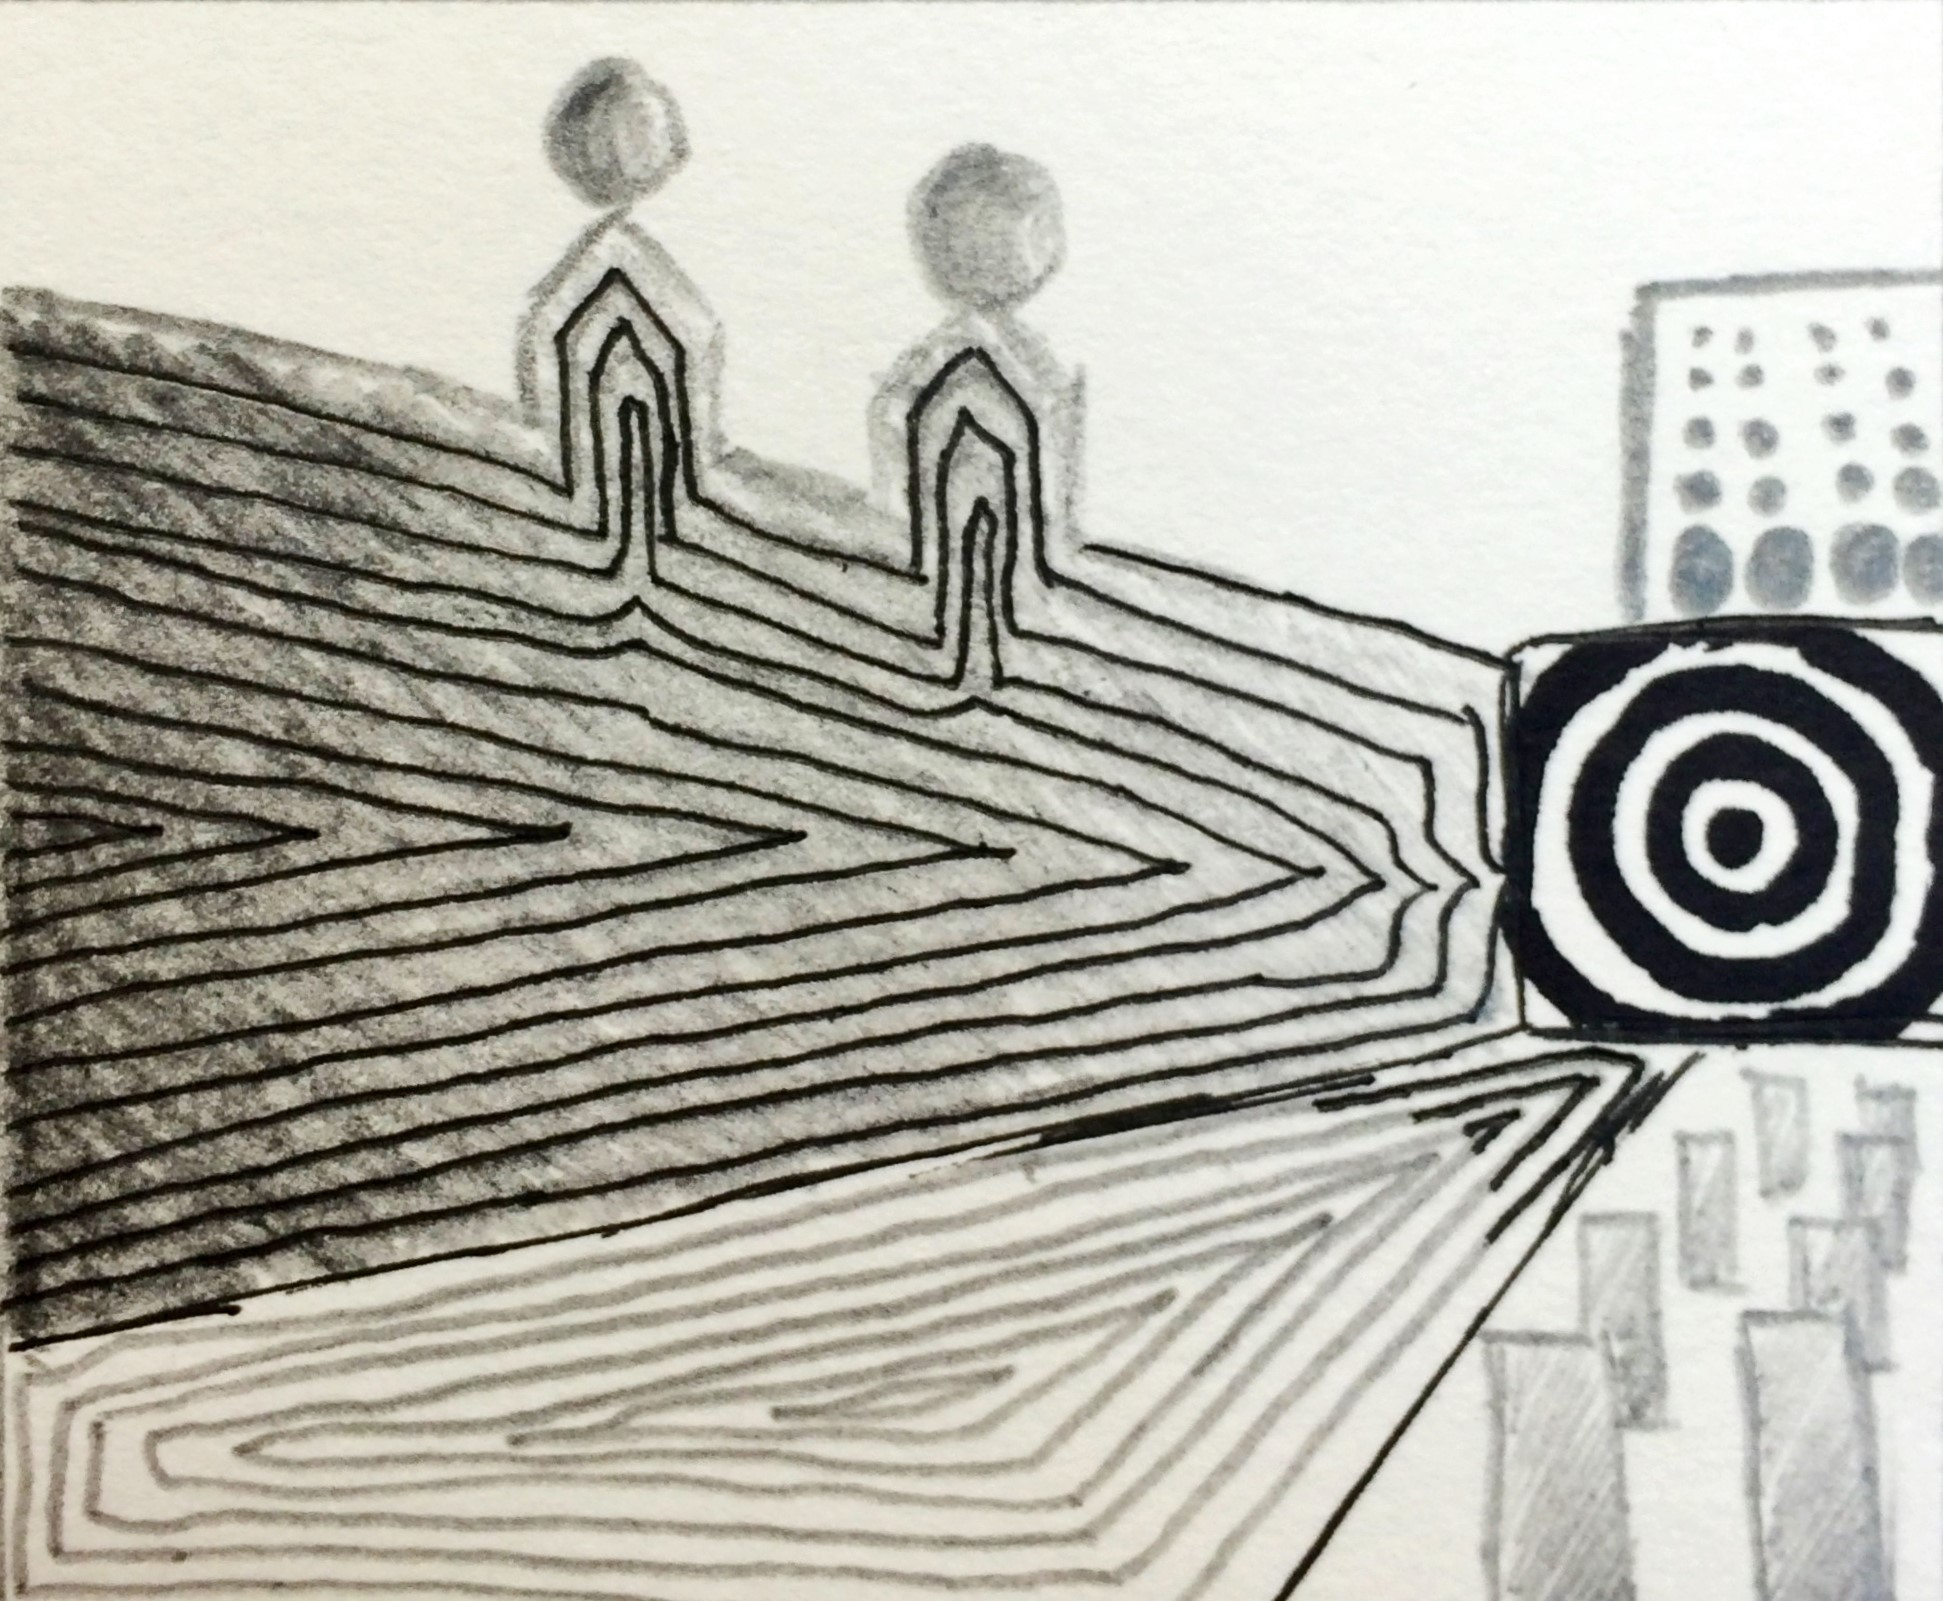 Using Lines In Drawing : Thinking and communicating visually 2 g3 kjhchong